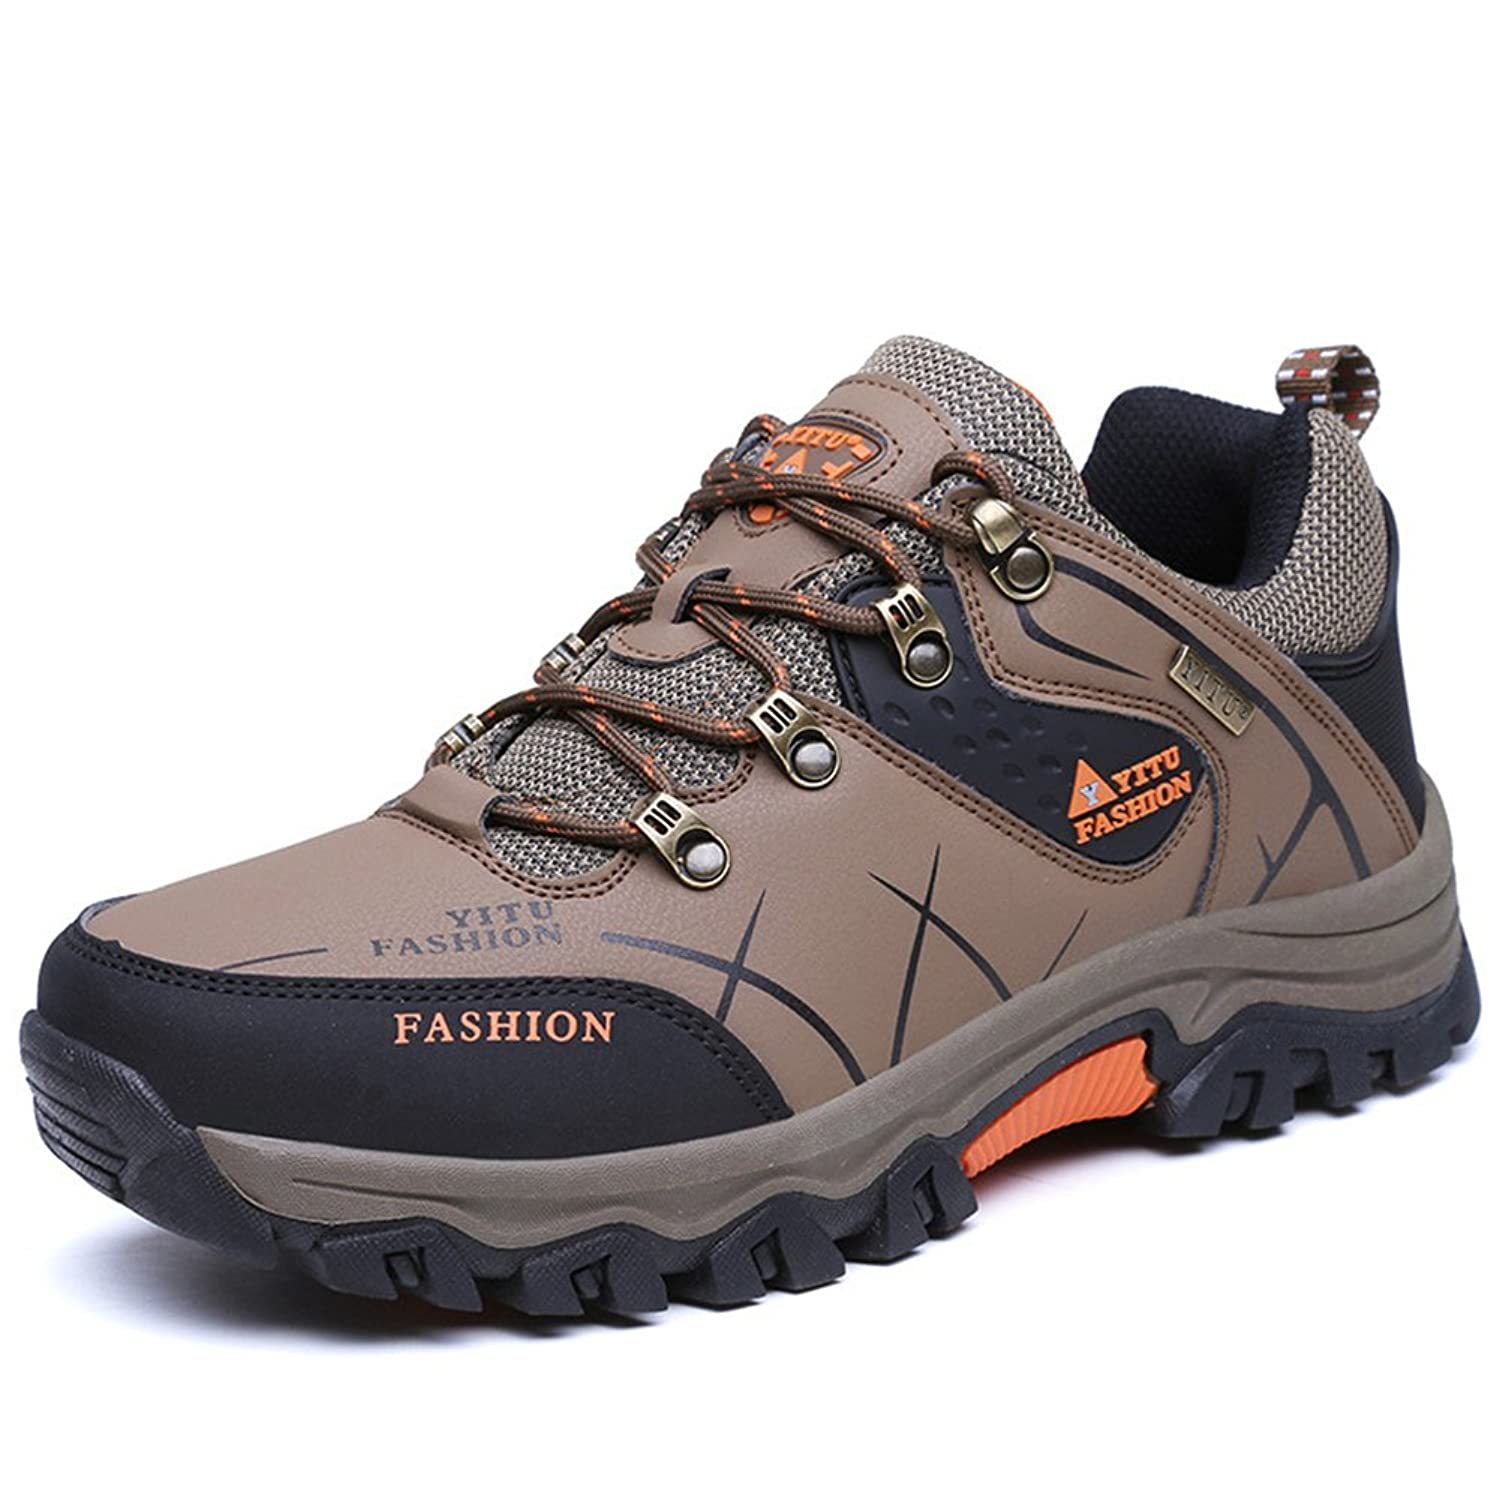 50%OFF Men Waterproof Shock Running Outdoor Sports Hiking